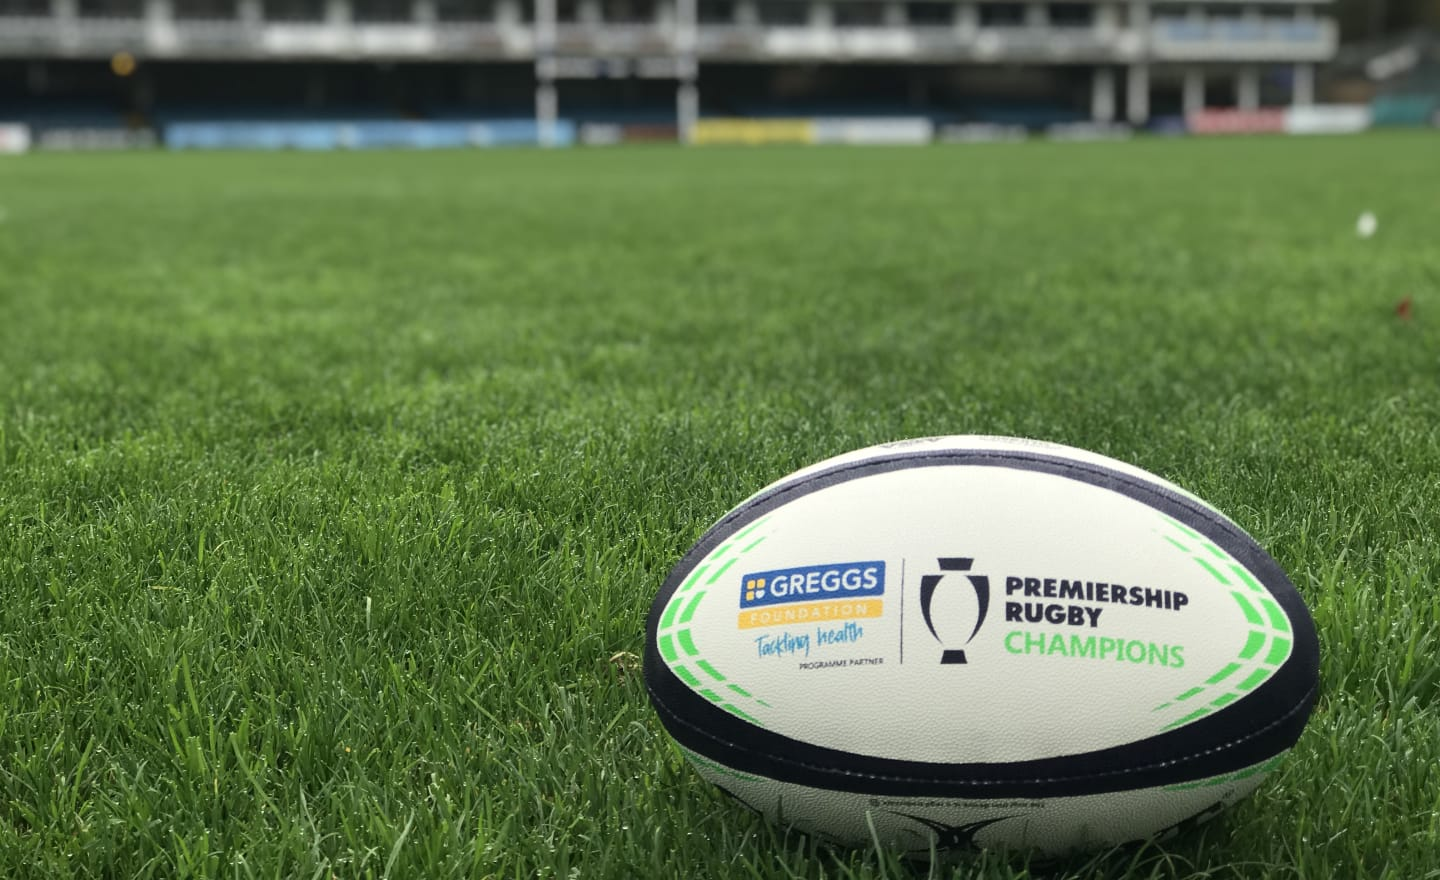 Bath Rugby Foundation launches Tackling Health in partnership with Premiership Rugby and Greggs Foundation